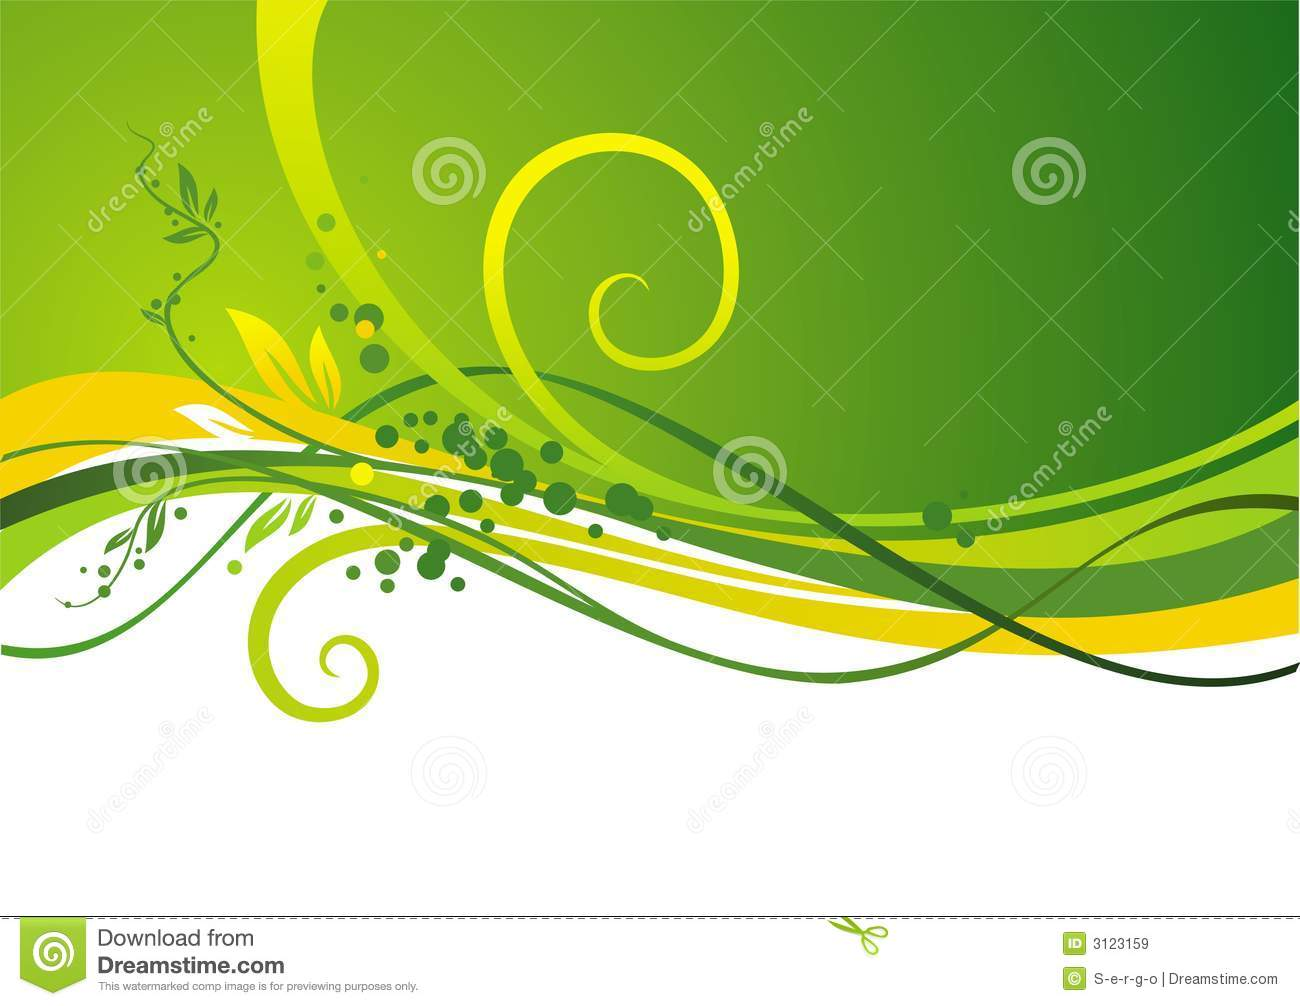 Yellow Green Design Royalty Free Stock Images Image 3123159: green plans